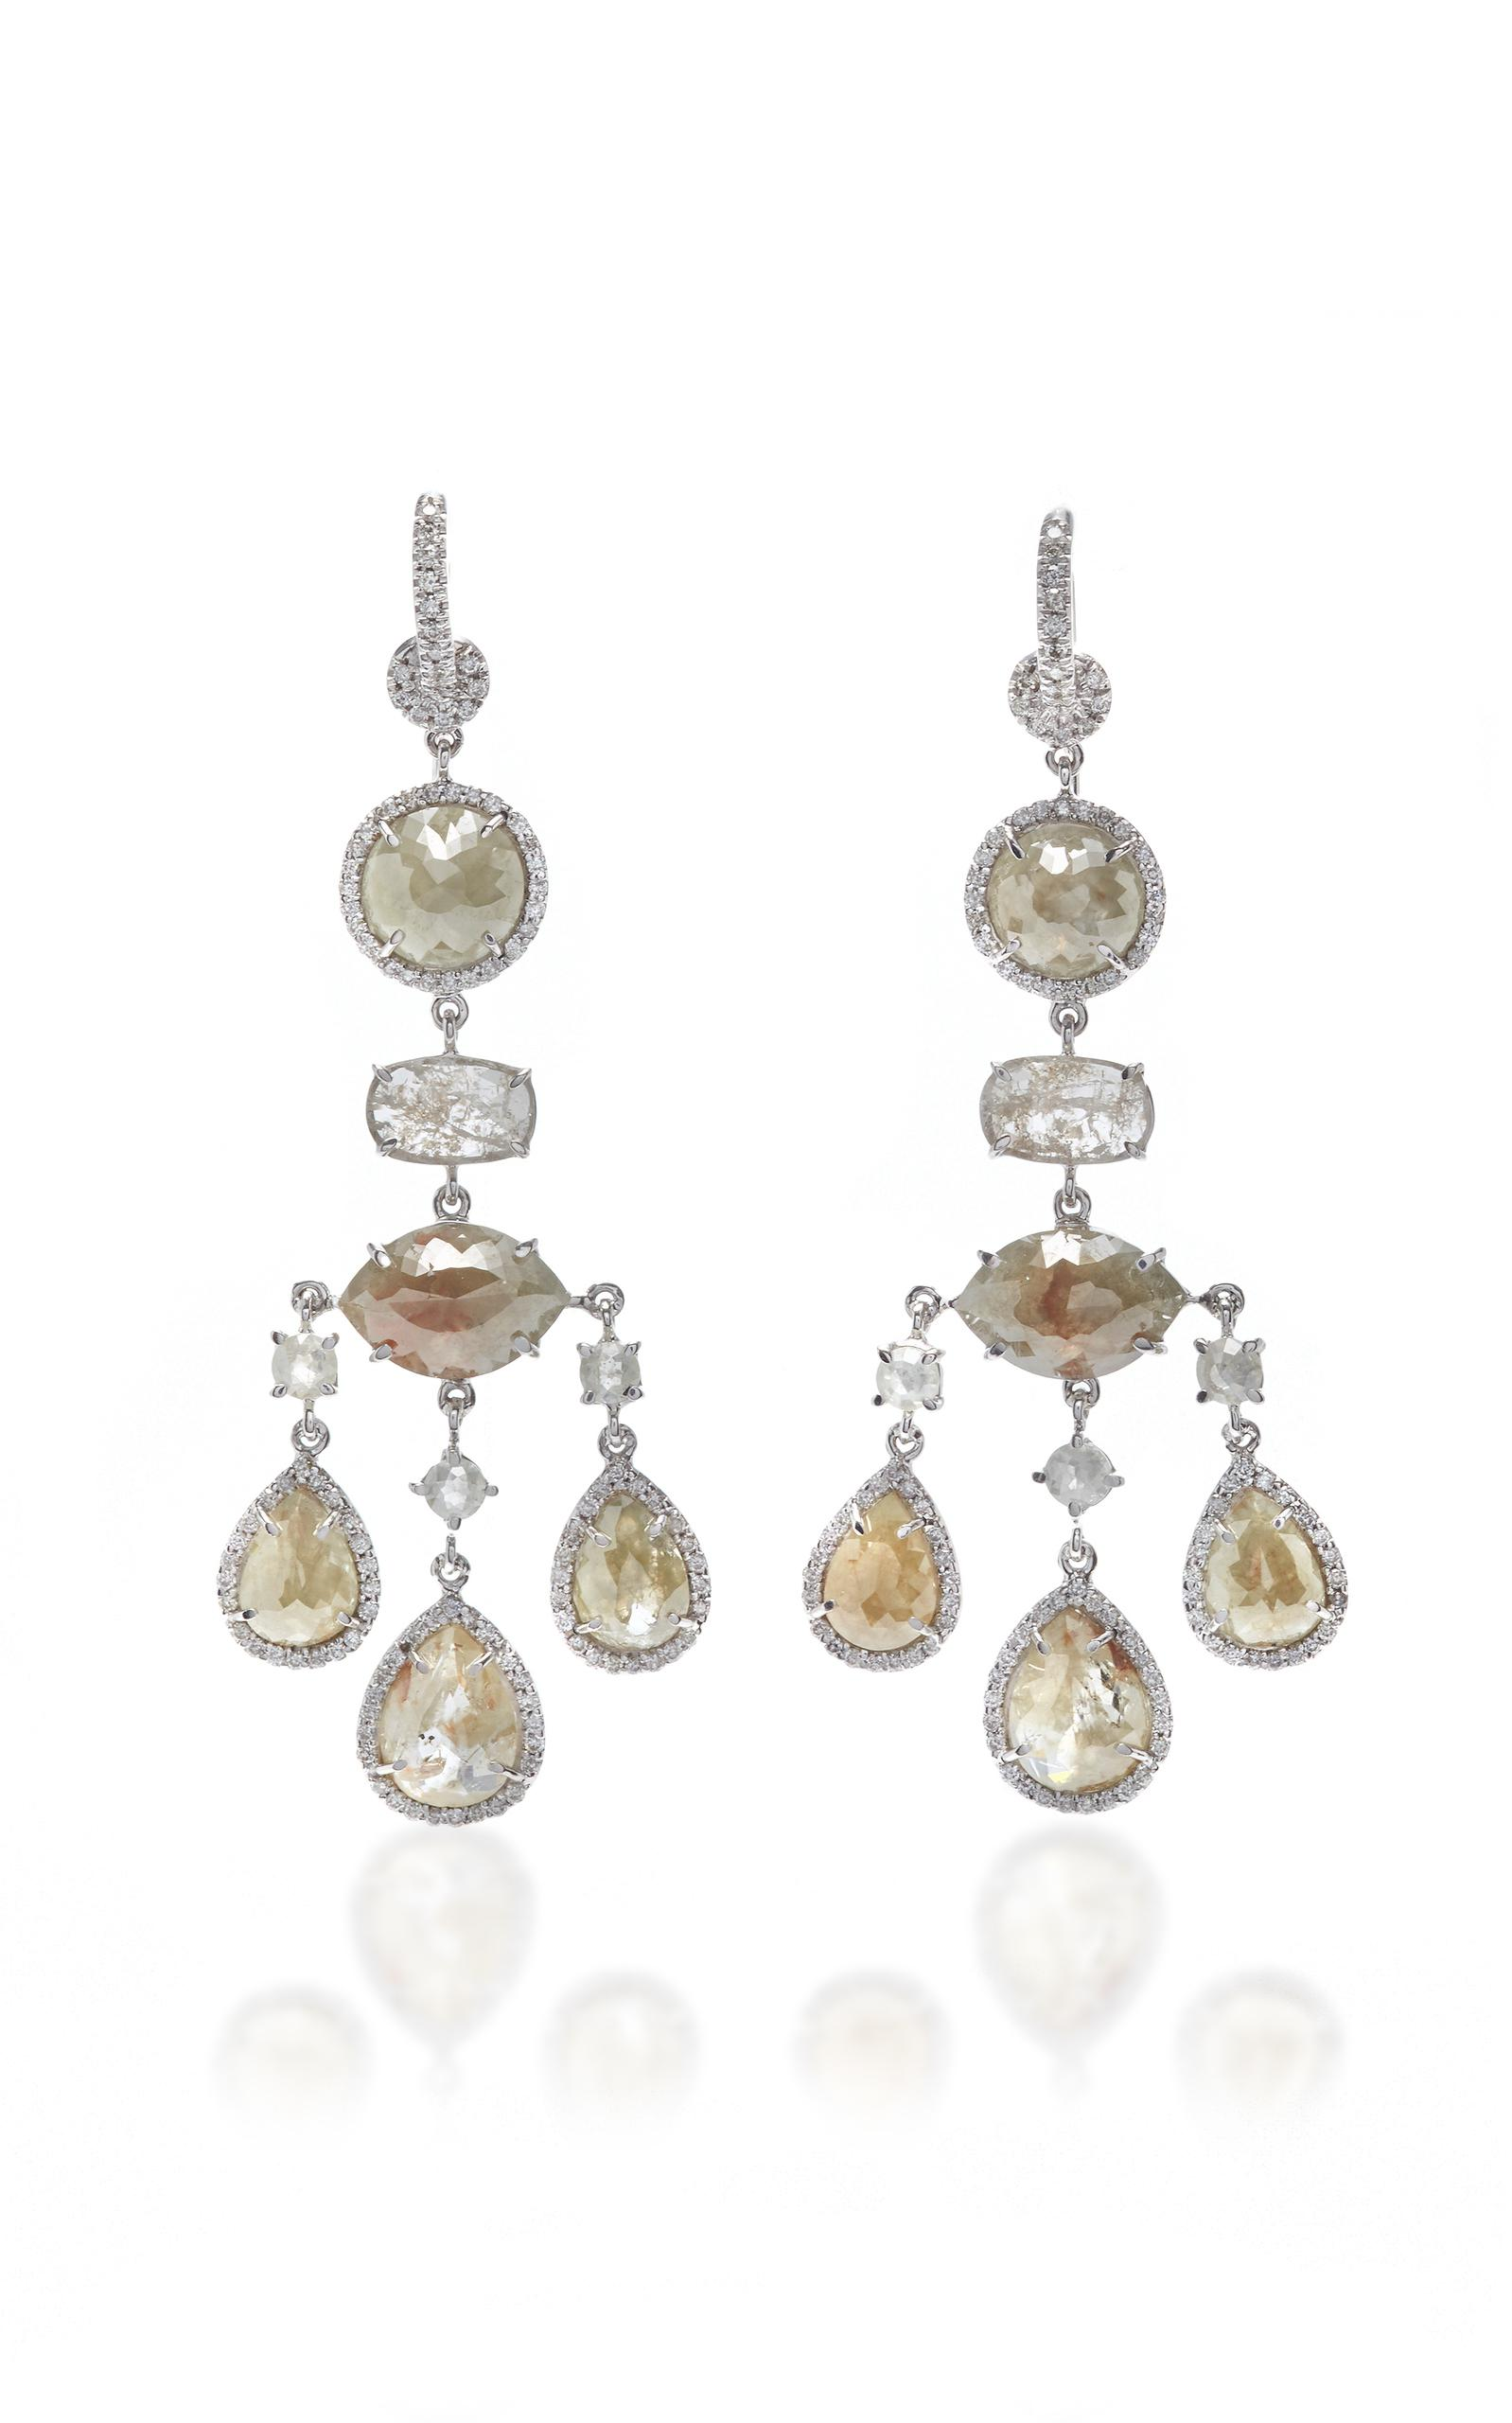 Lyst Nina Runsdorf 18k White Gold And Diamond Chandelier Earrings